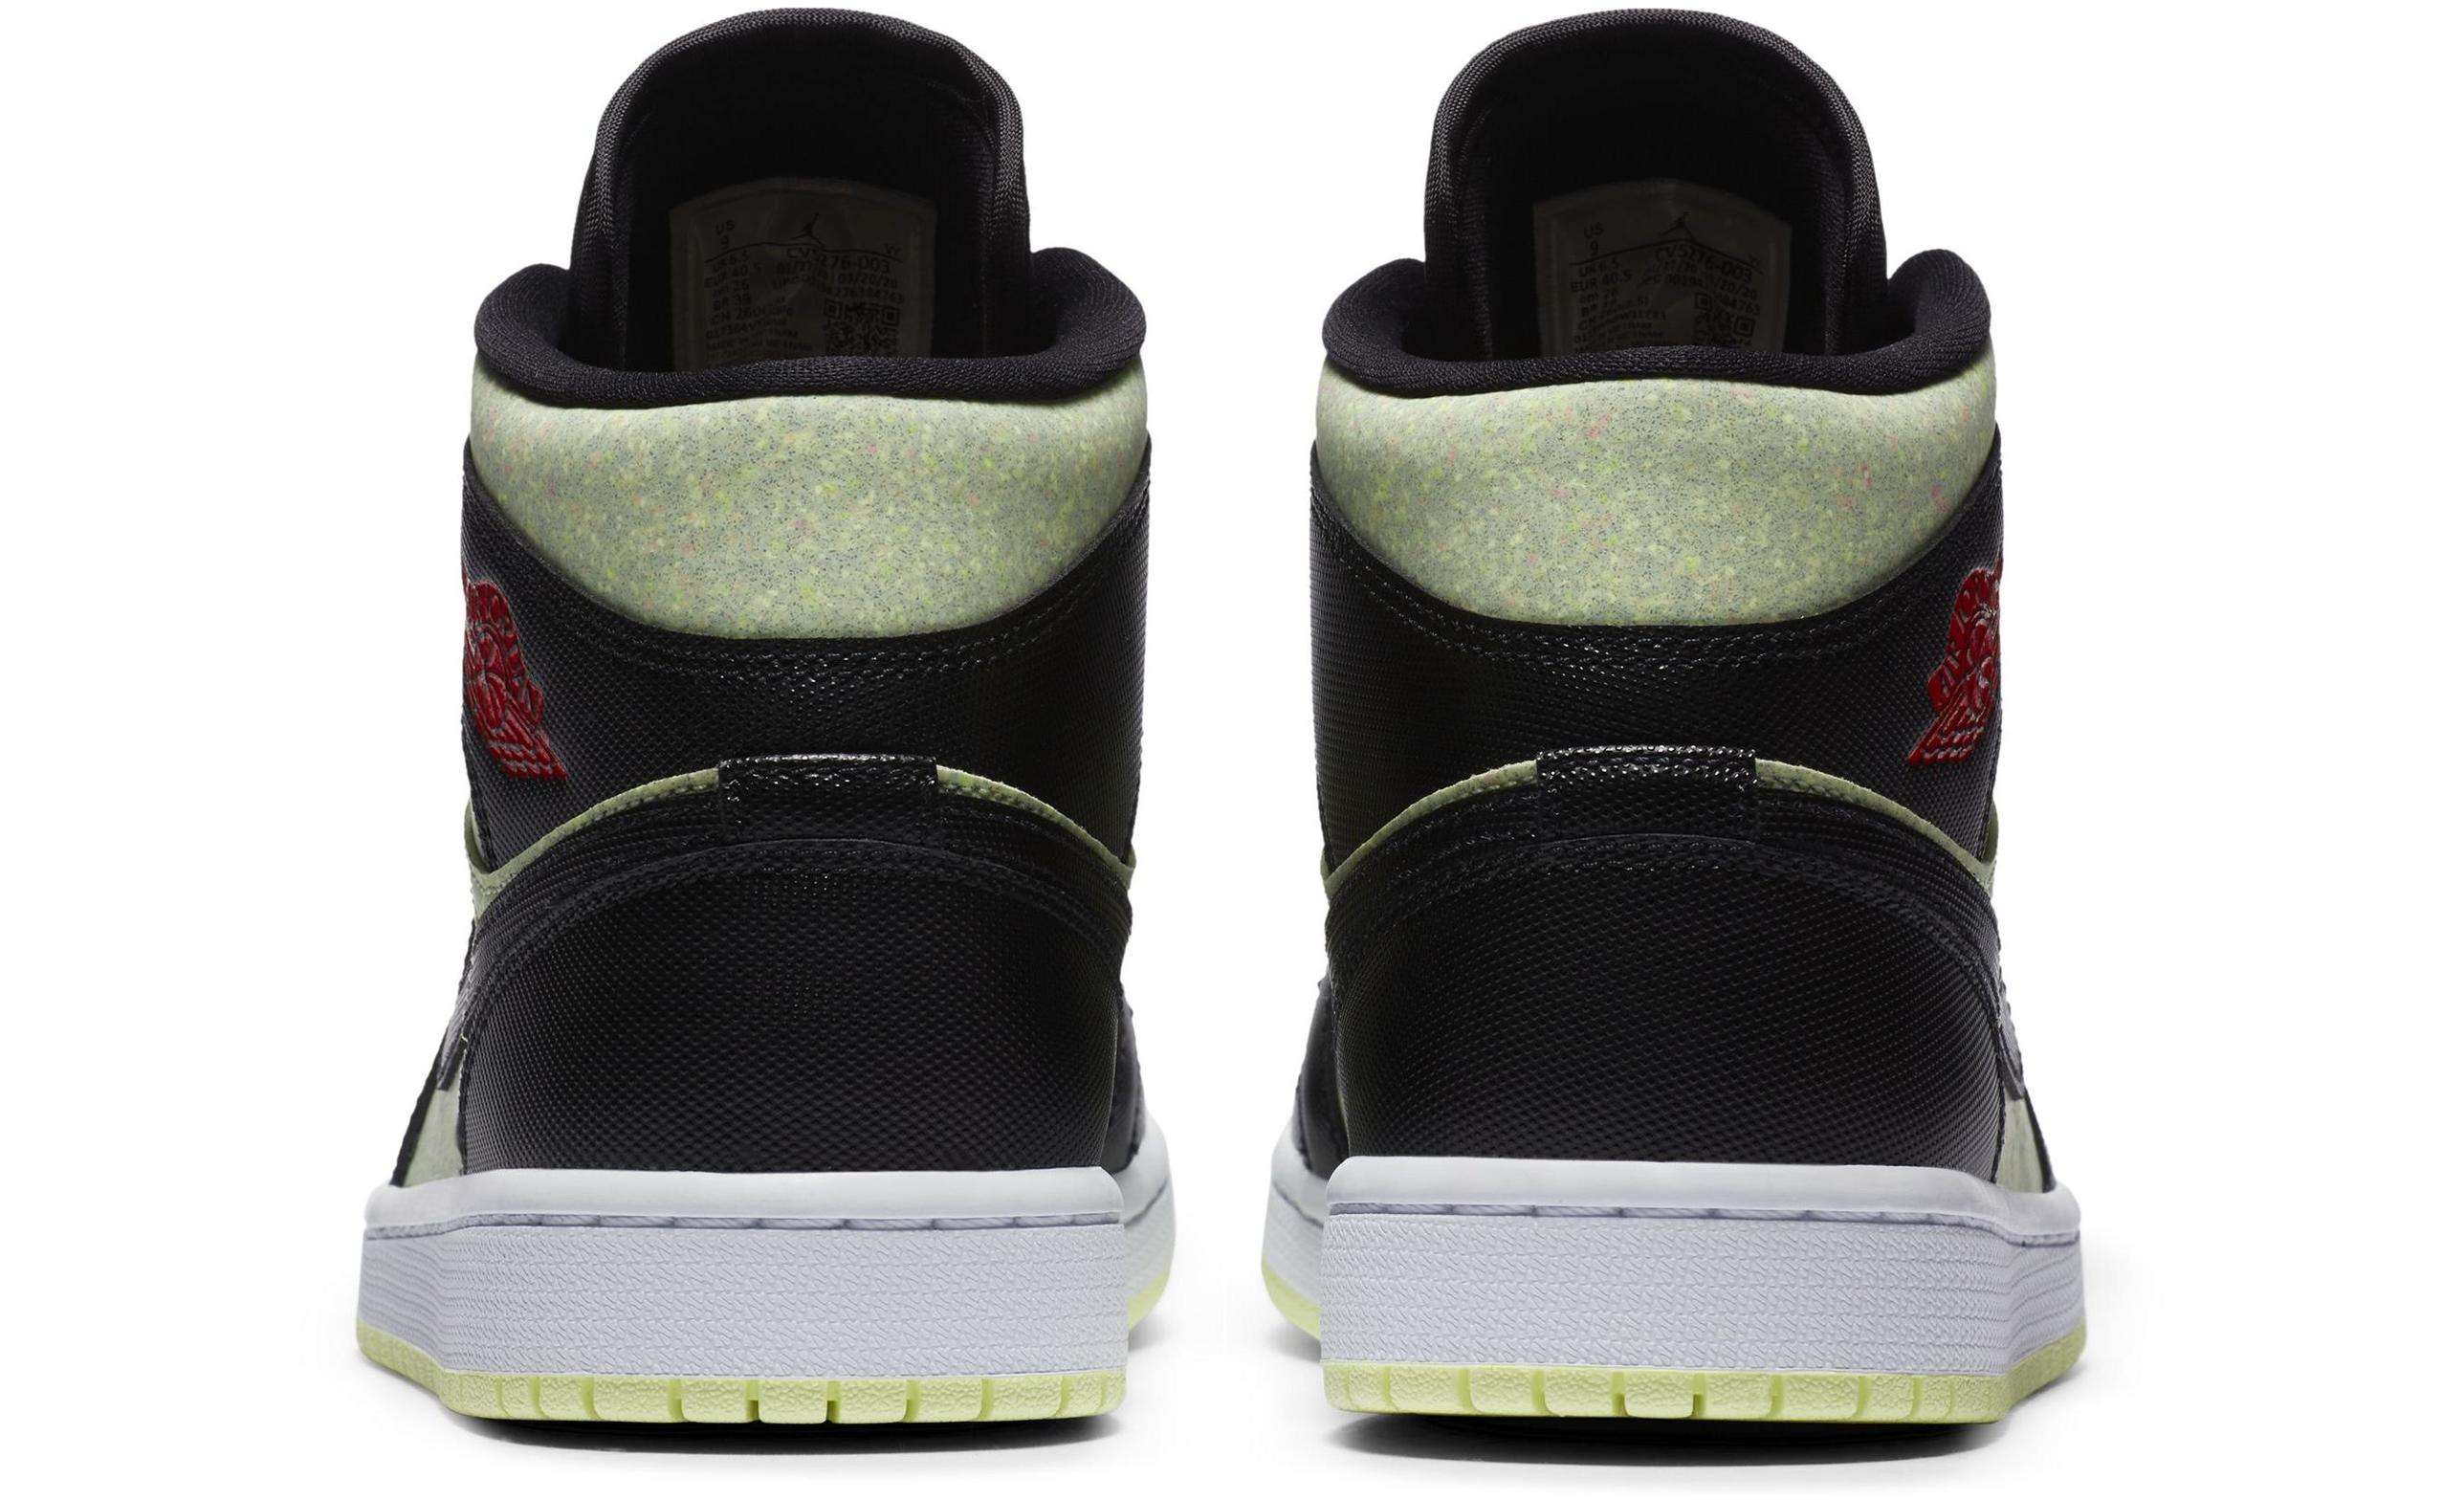 Air Jordan 1 Mid SE Black/Barely Volt/White/Chile Red